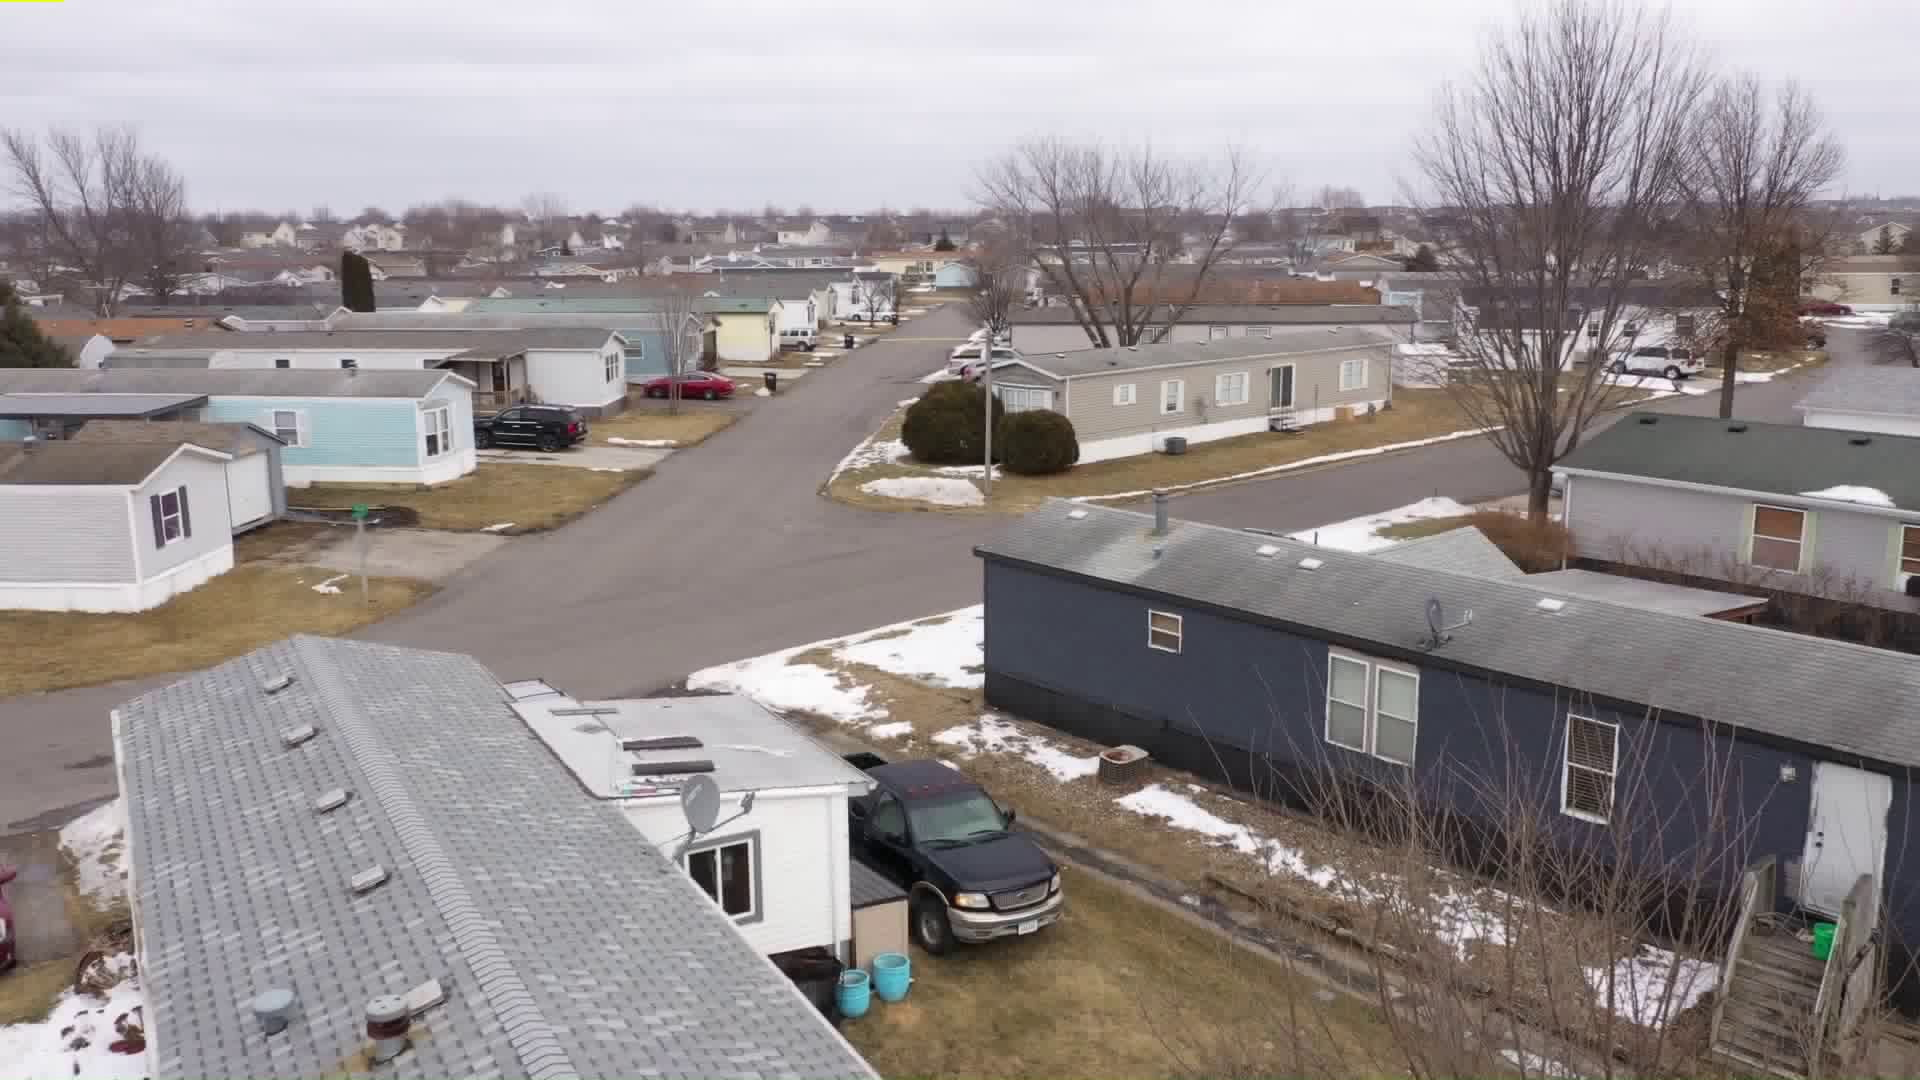 Mobile Home Residents Plea With Lawmakers For Change